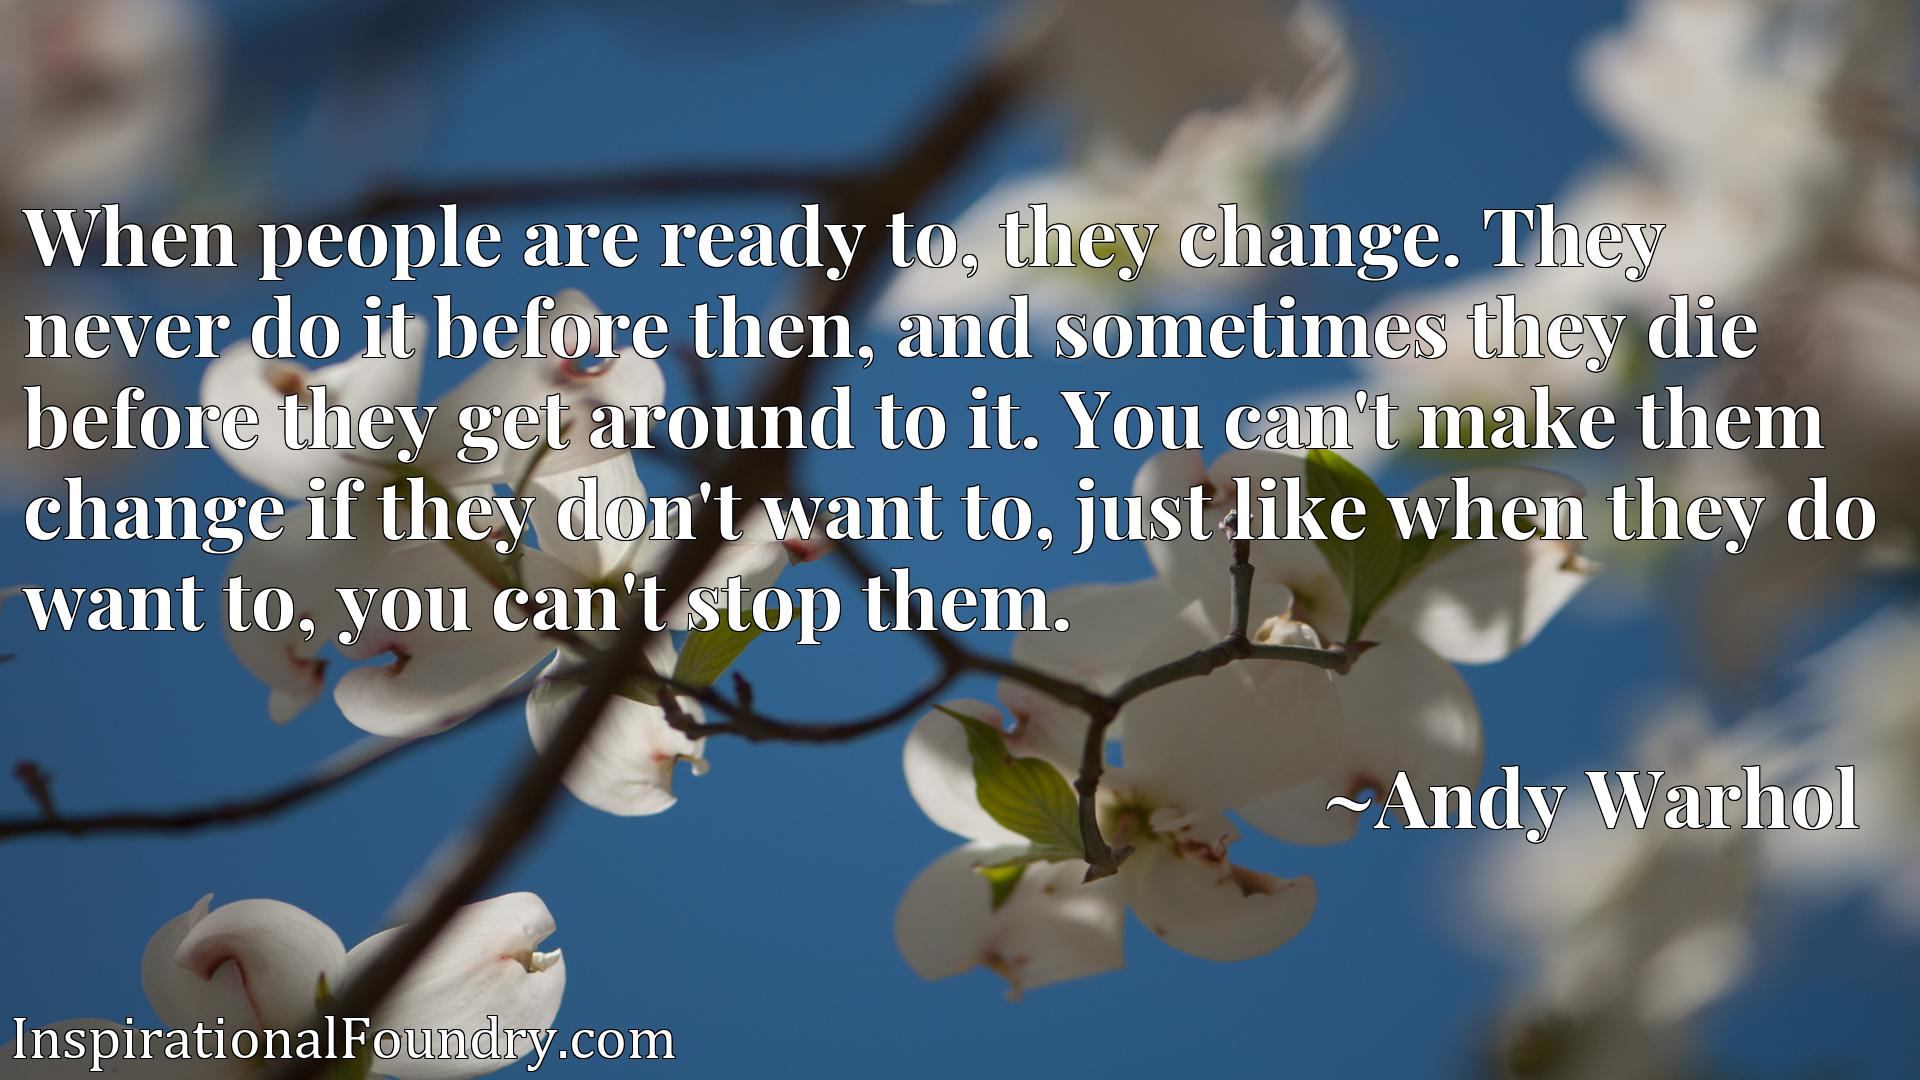 When people are ready to, they change. They never do it before then, and sometimes they die before they get around to it. You can't make them change if they don't want to, just like when they do want to, you can't stop them.